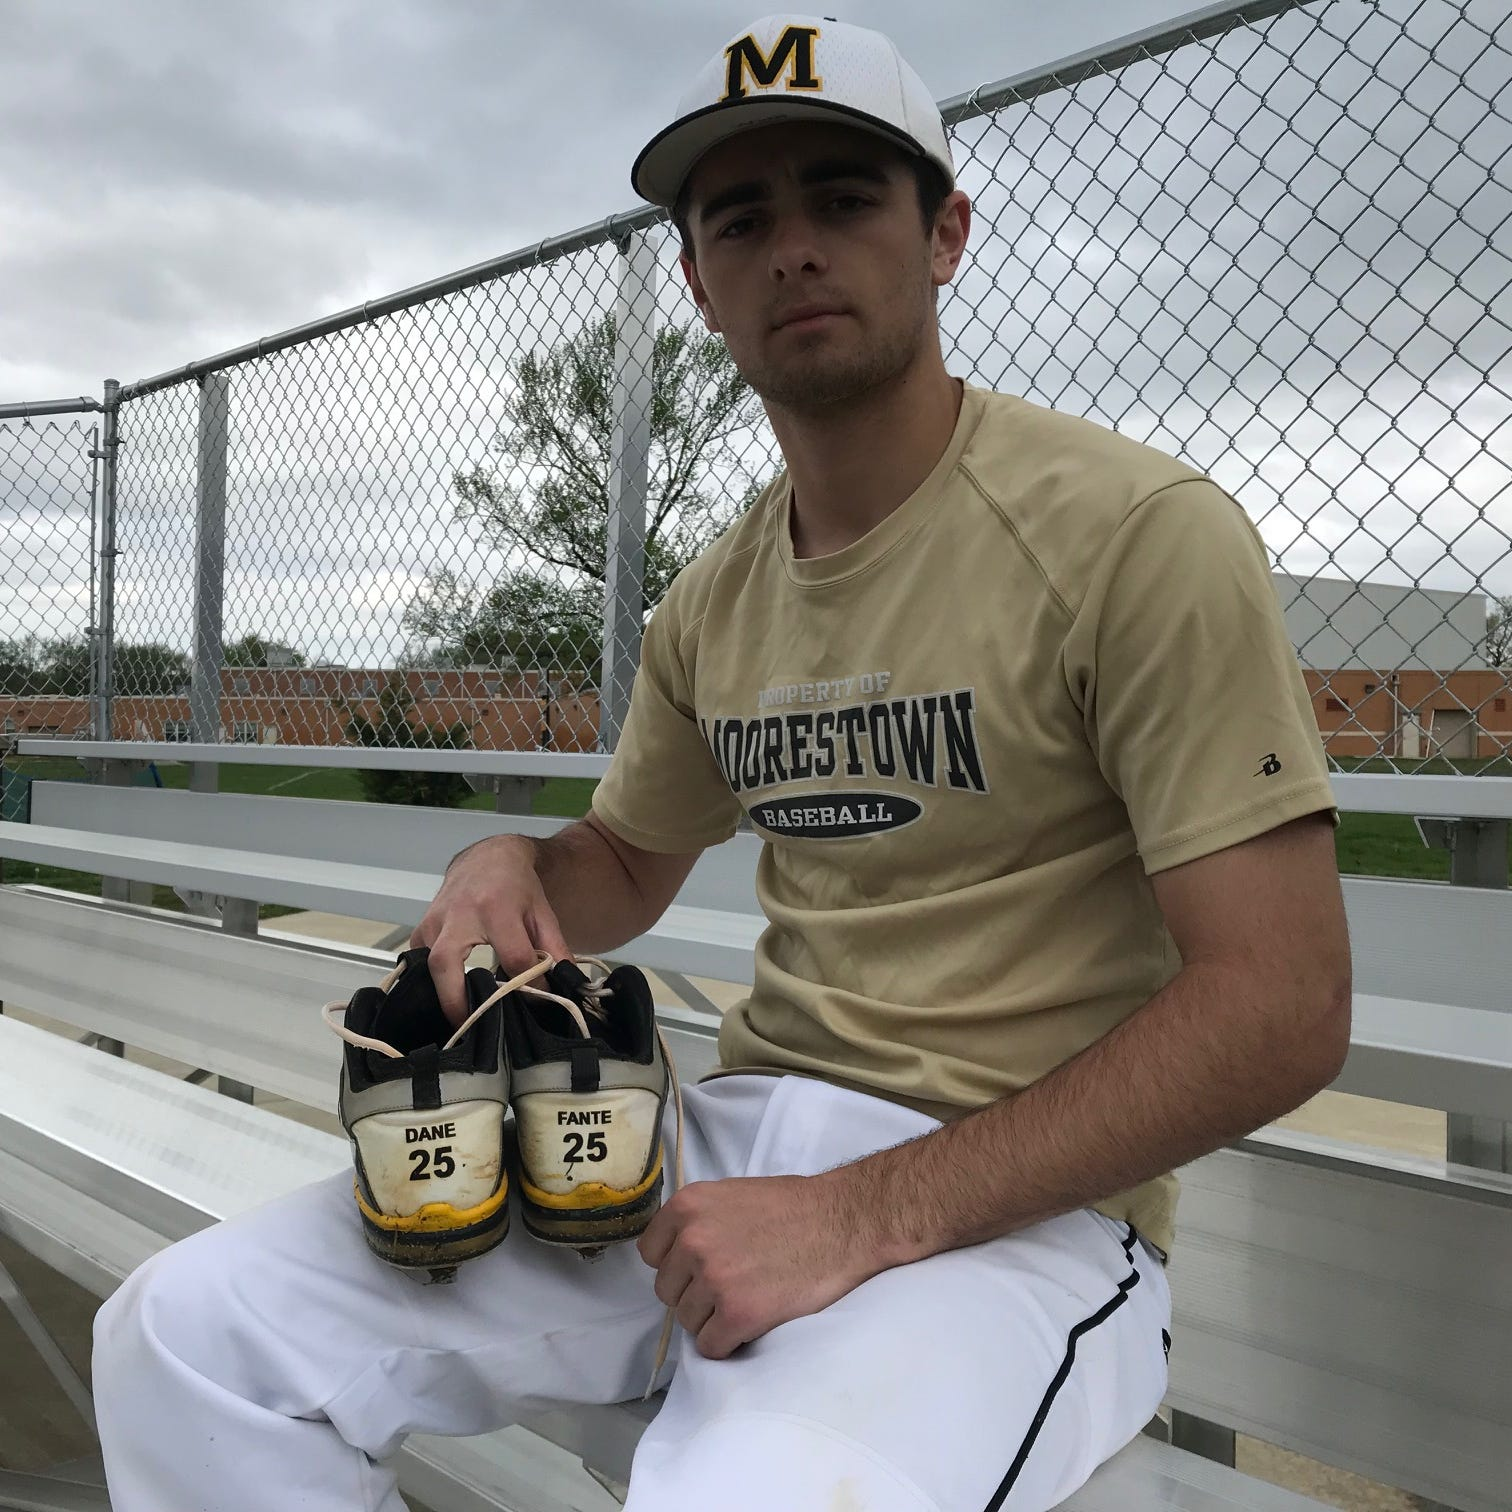 Baseball: Moorestown's Kevin McCarthy honors Dane Fante by wearing his cleats